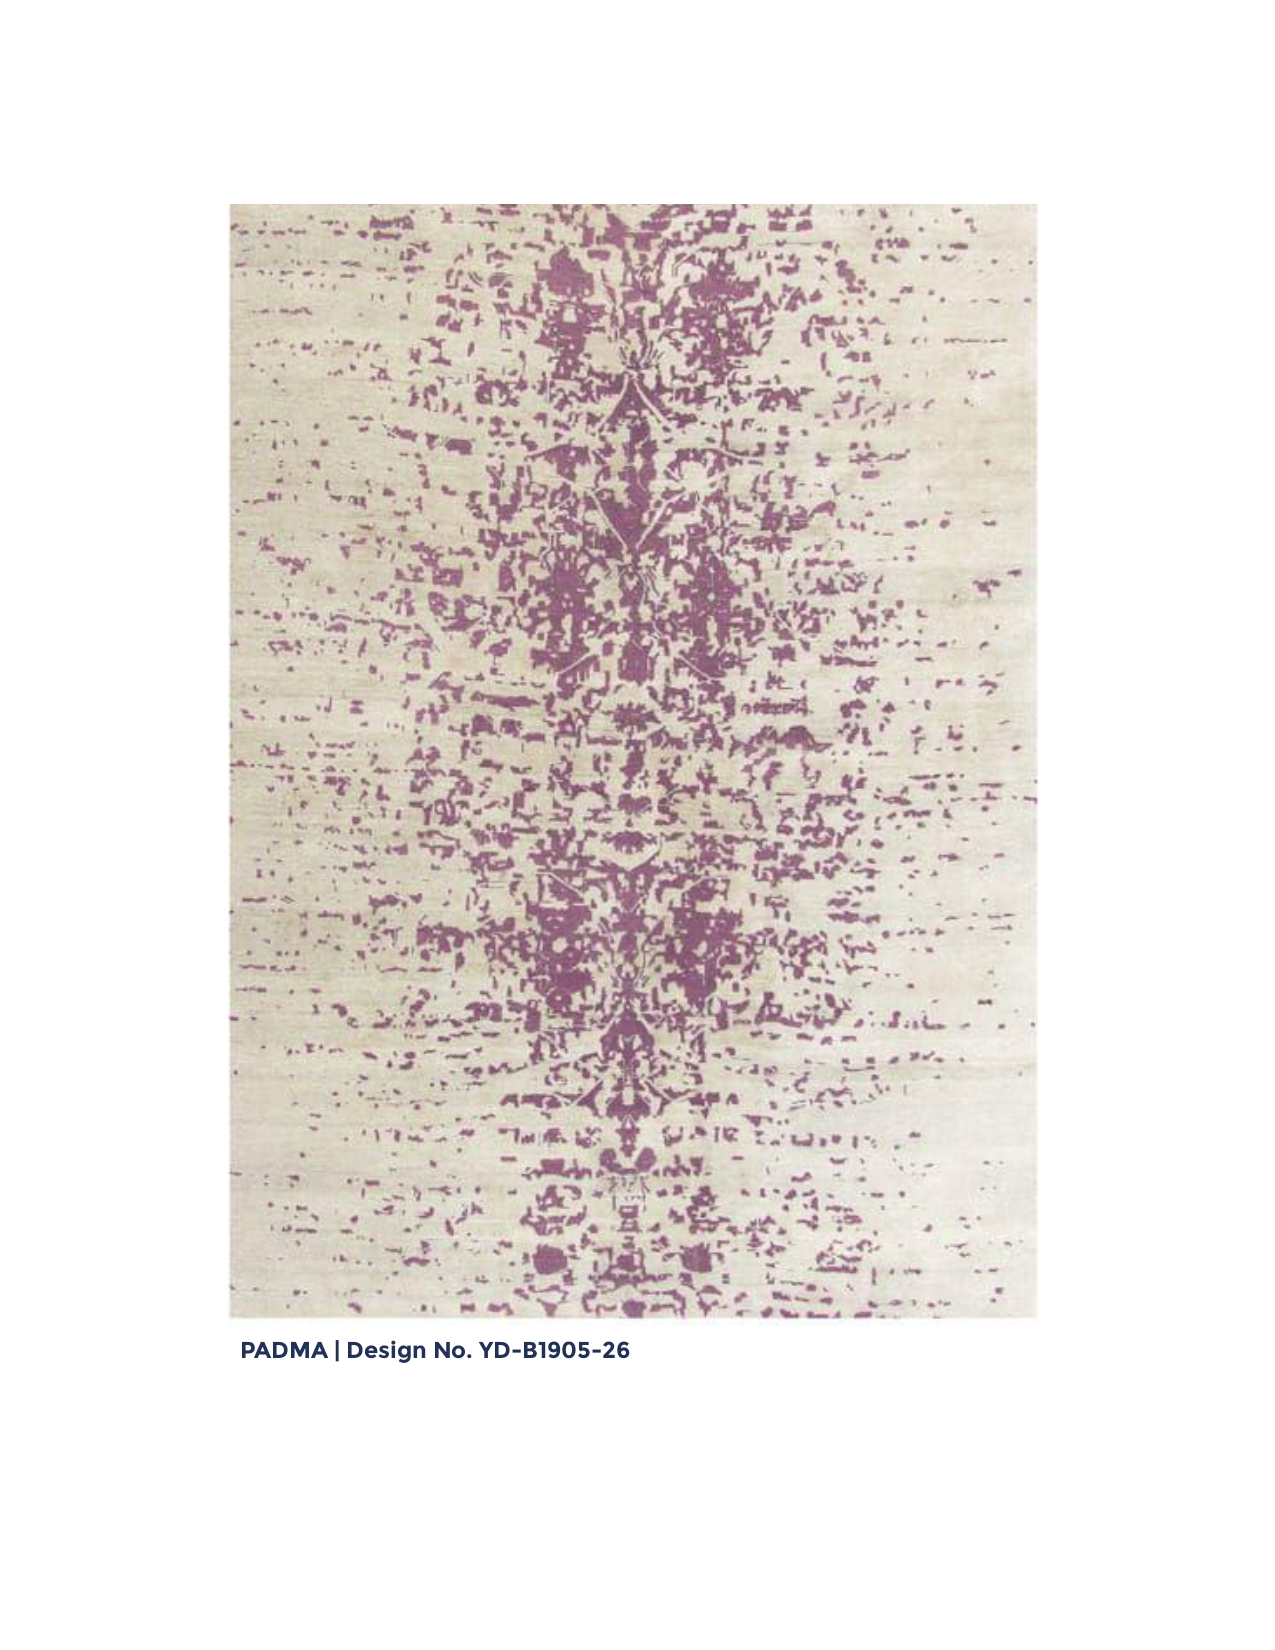 Hand_Knotted_CC_1905_31.jpg